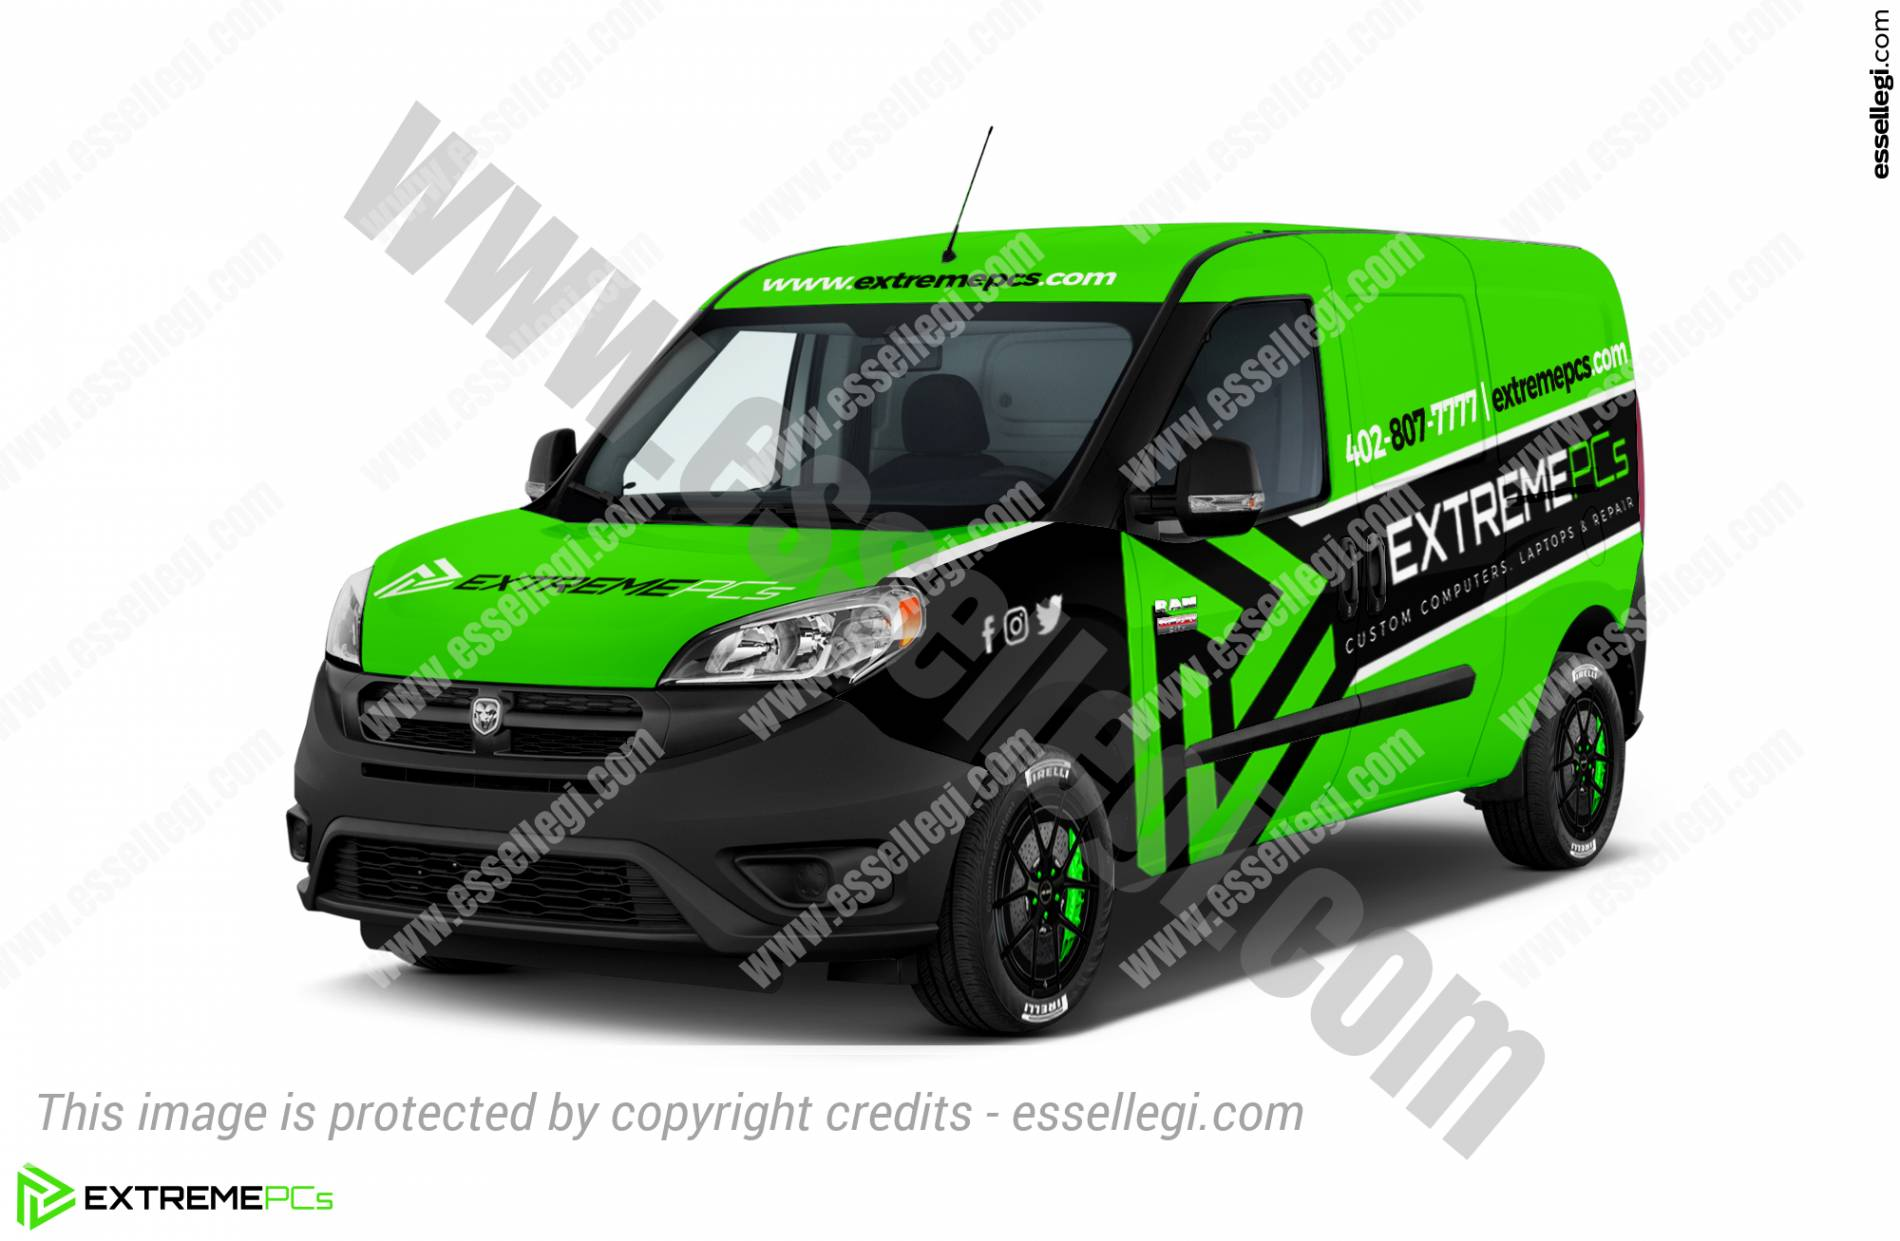 Dodge RAM ProMaster City Wrap Design. Dodge RAM ProMaster City | Van Wrap Design by Essellegi. Van Signs, Van Signage, Van Wrapping, Van Signwriting, Van Wrap Designer, Signs for Van, Van Logo, Van Graphic by Essellegi.